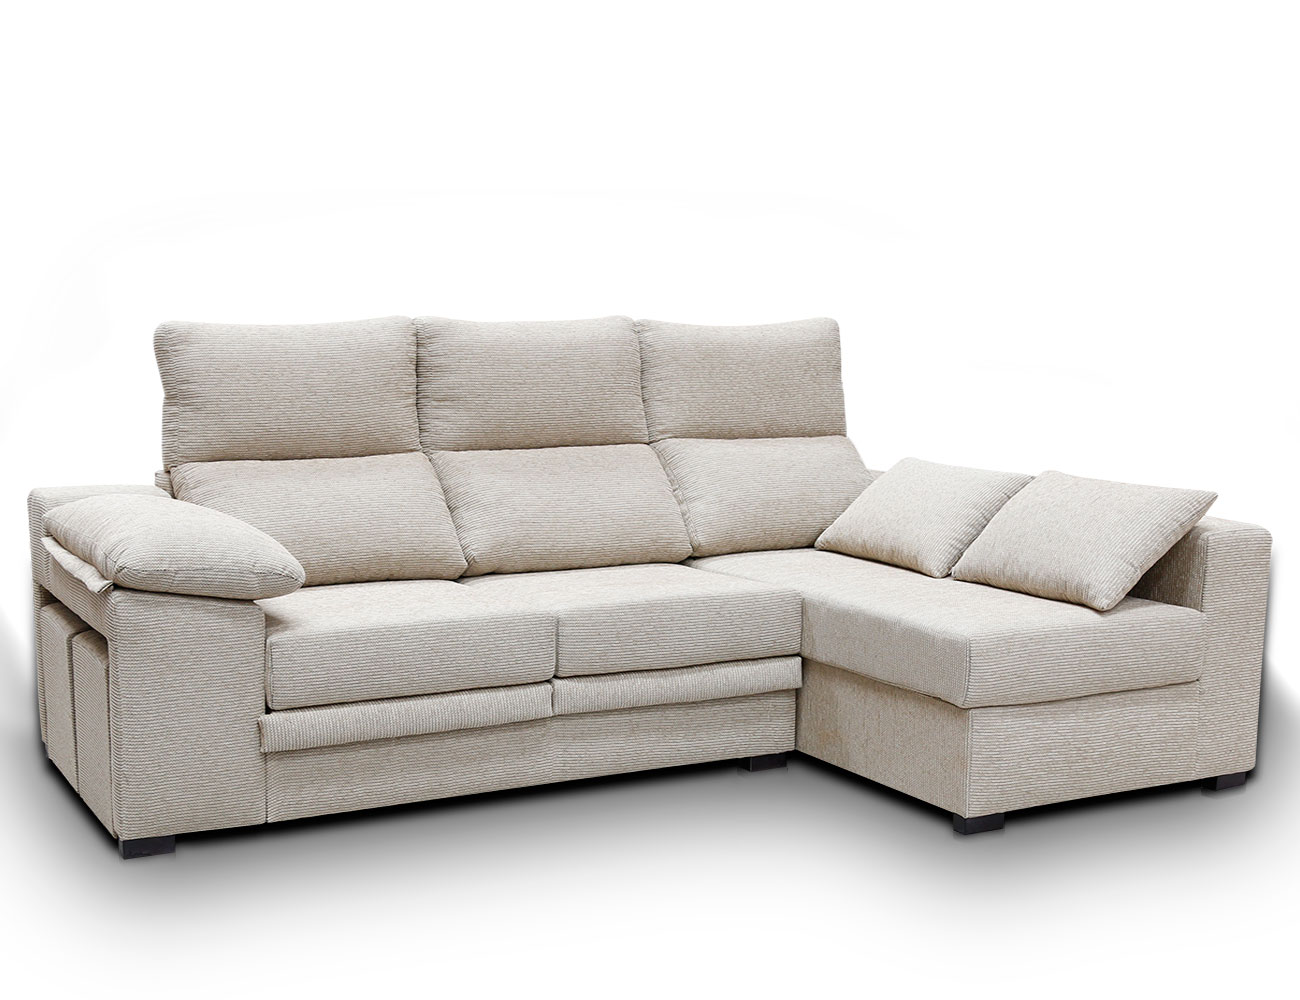 Sofa chaiselongue moderno puffs pardo 12